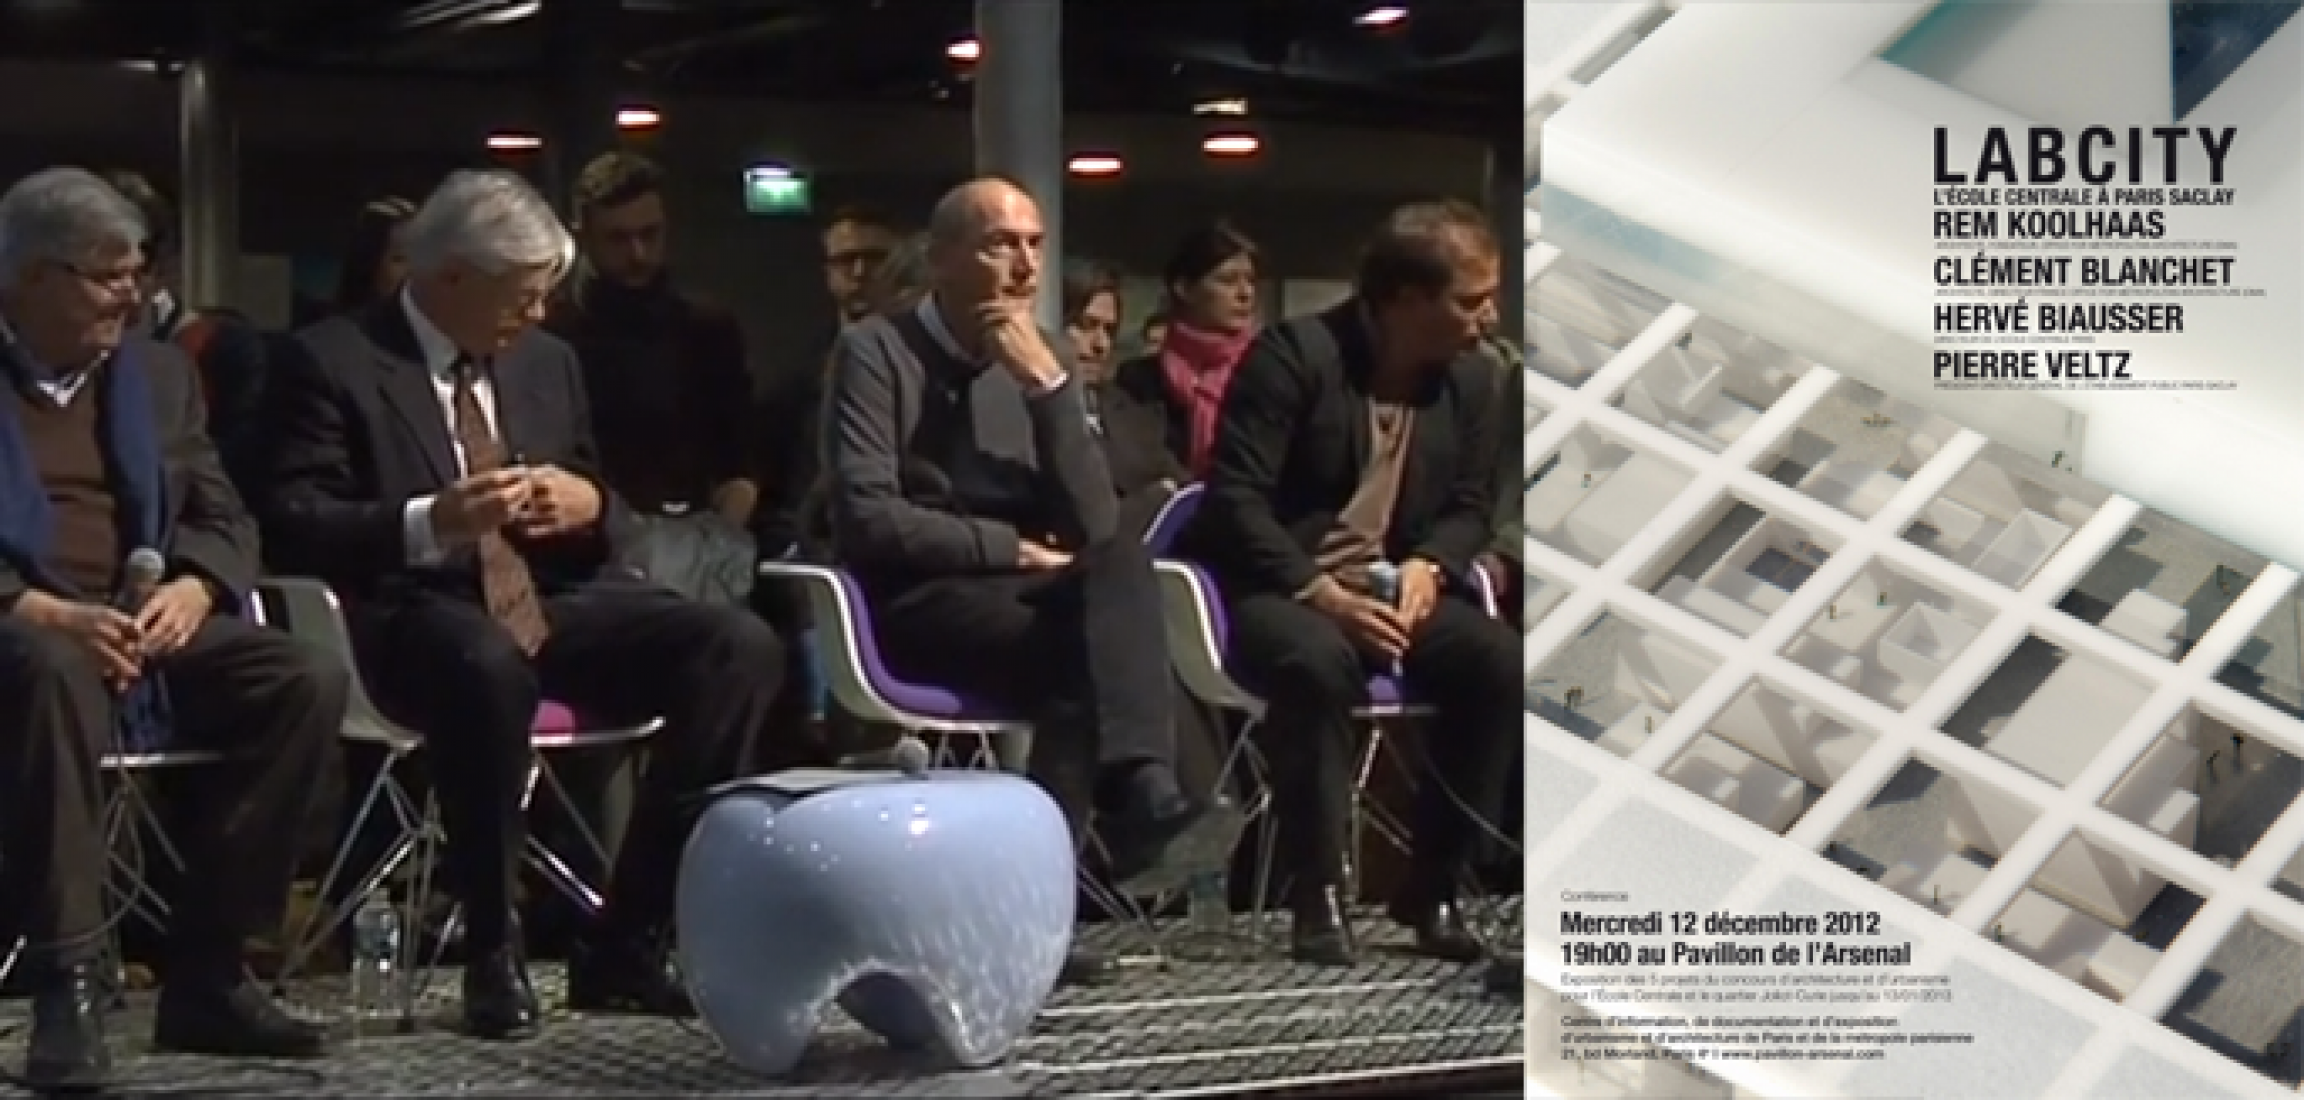 Ecole Centrale conference with Rem Koolhaas and Clement Blanchet